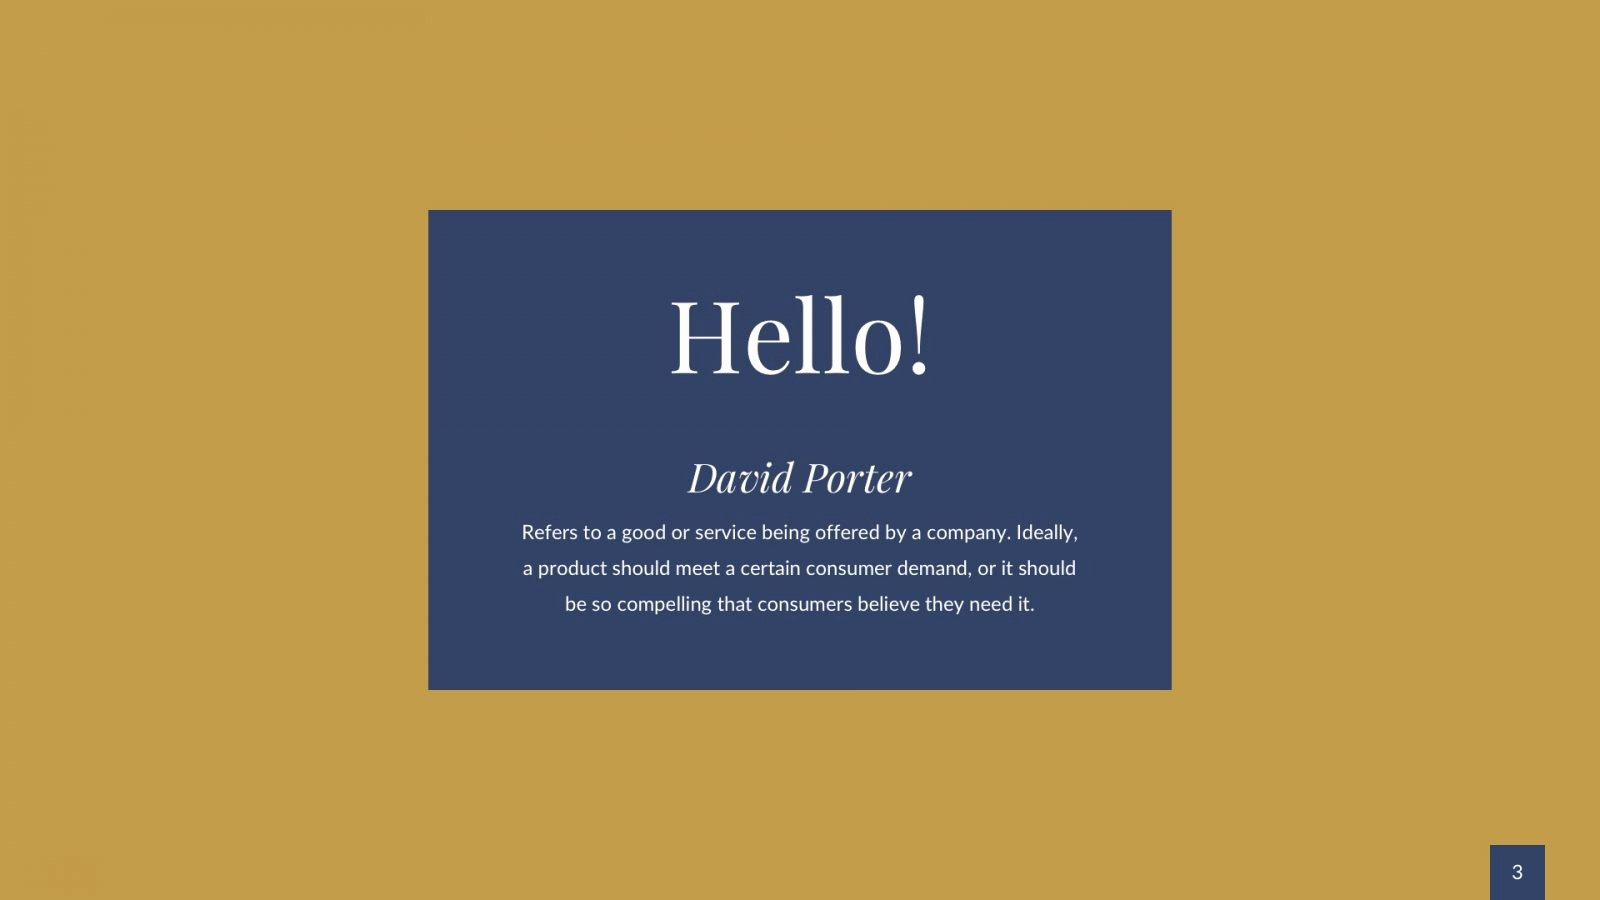 Blue and Gold Powerpoint Template Elegant Blue and Gold Elegance Free Powerpoint Template